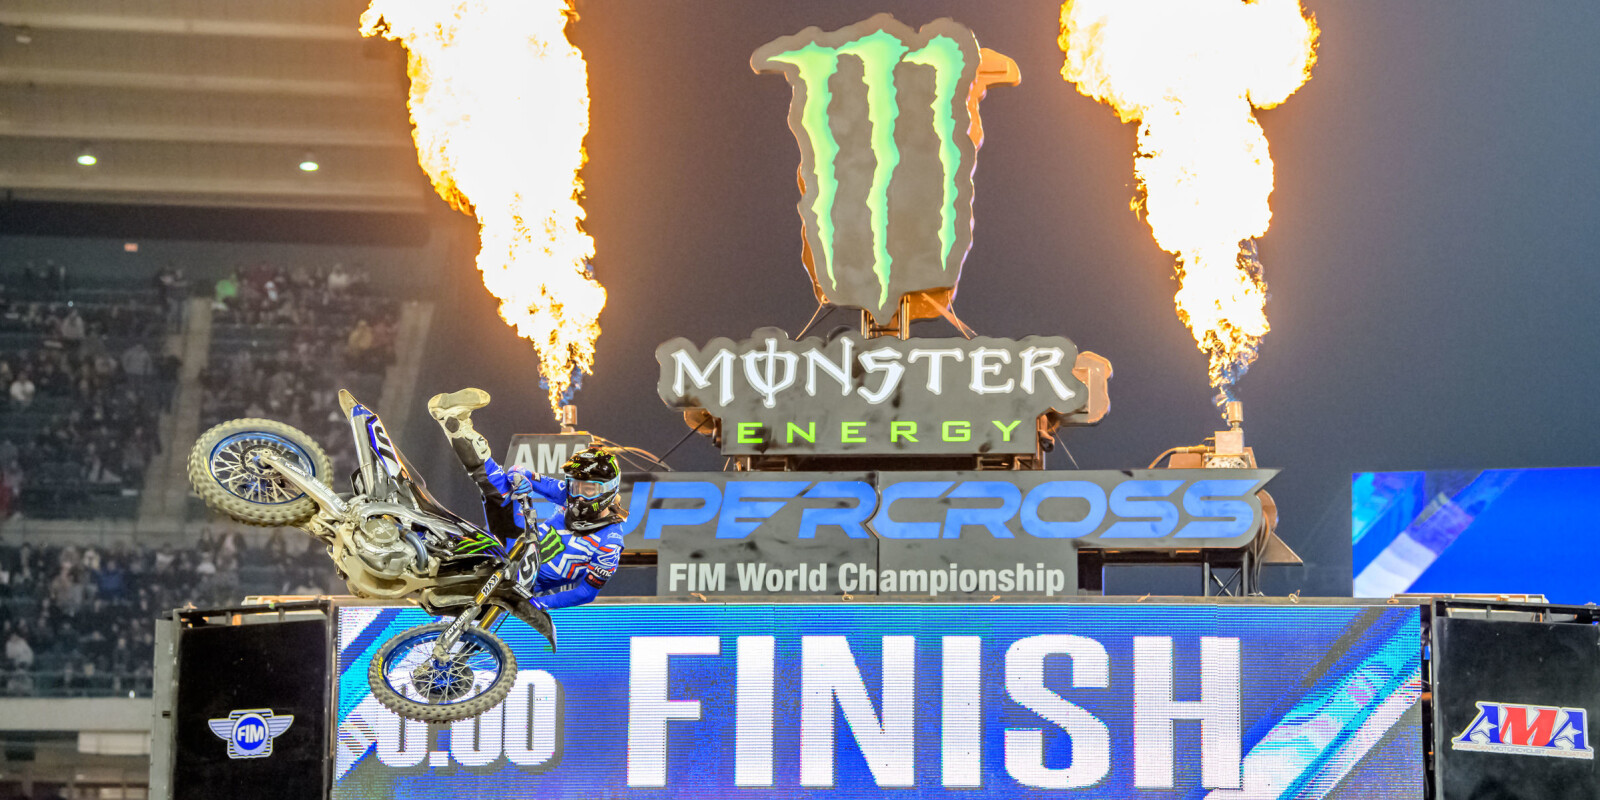 Images from the 2020 SX Anaheim 1